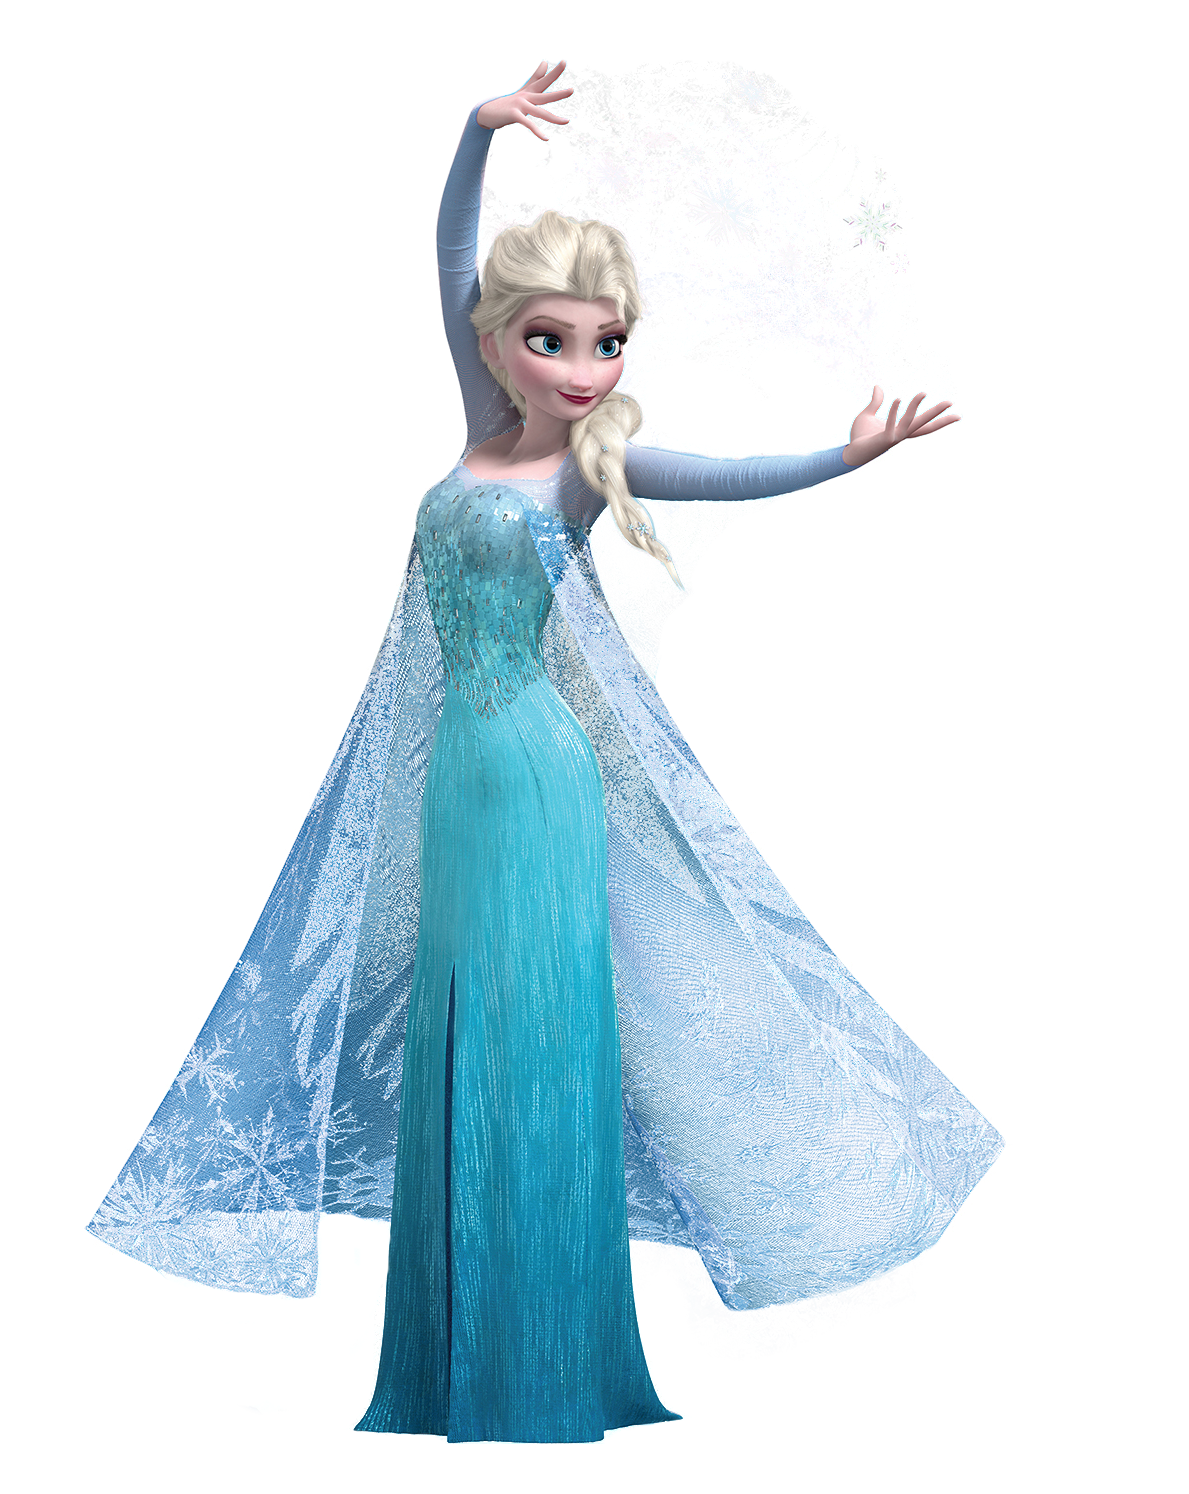 pin elsa frozen png icons and png backgrounds #27783